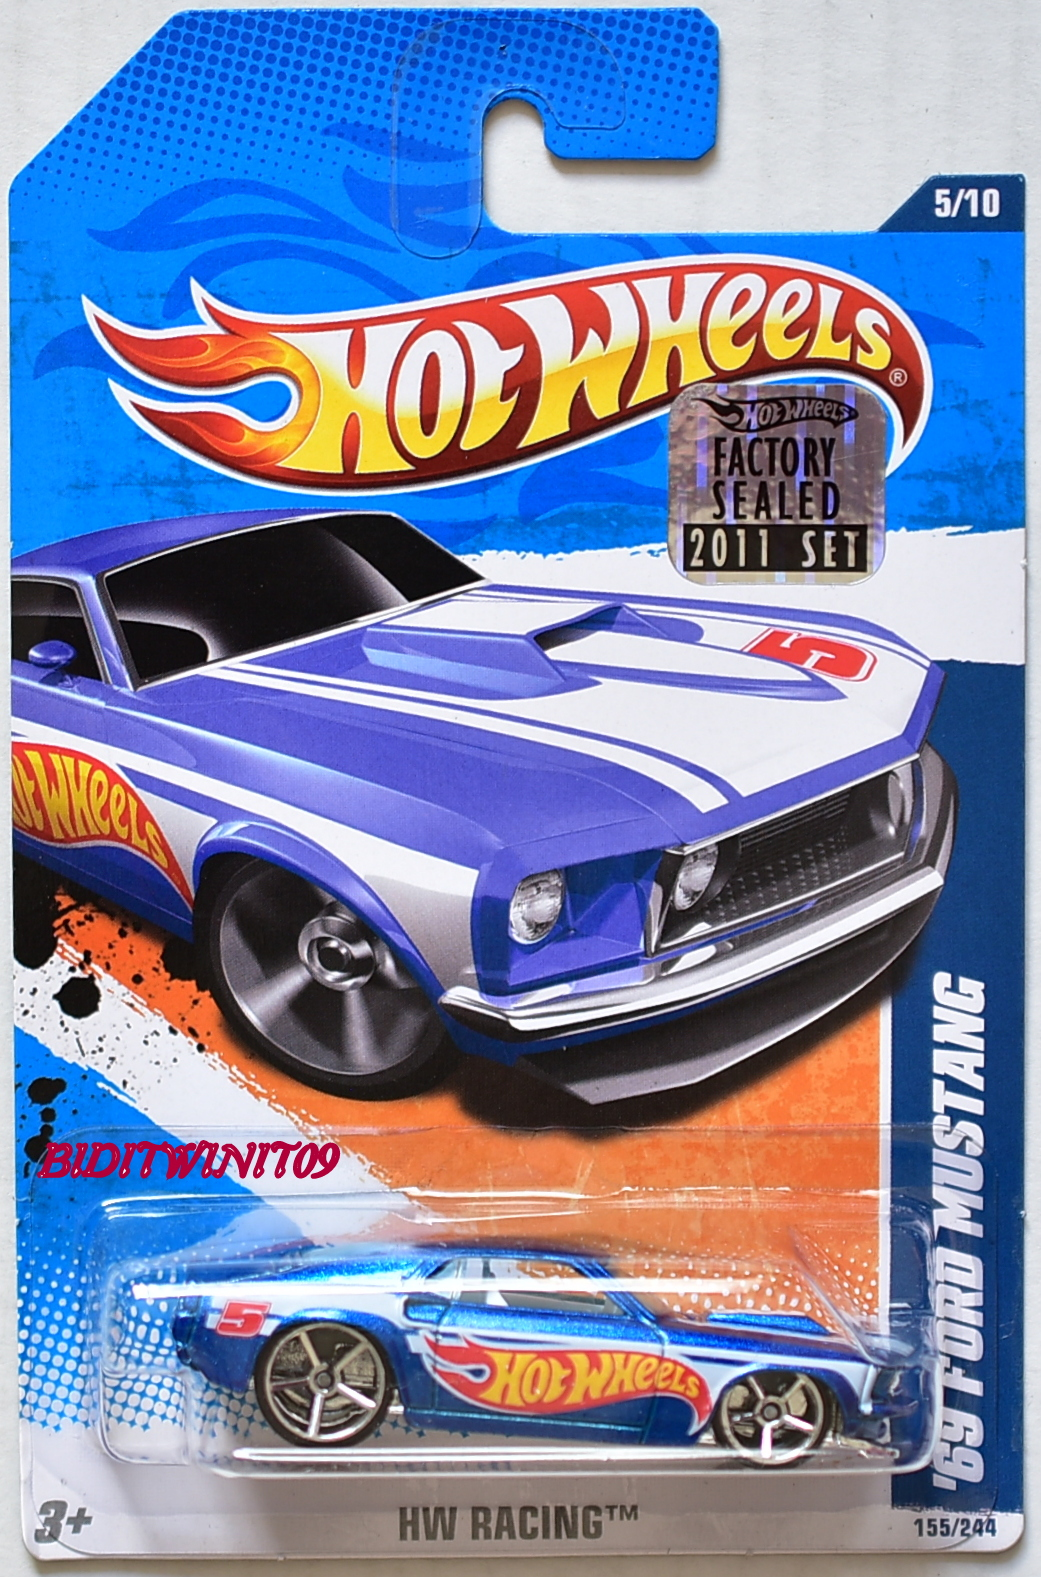 HOT WHEELS 2011 HW RACING '69 FORD MUSTANG #5/10 BLUE FACTORY SEALED